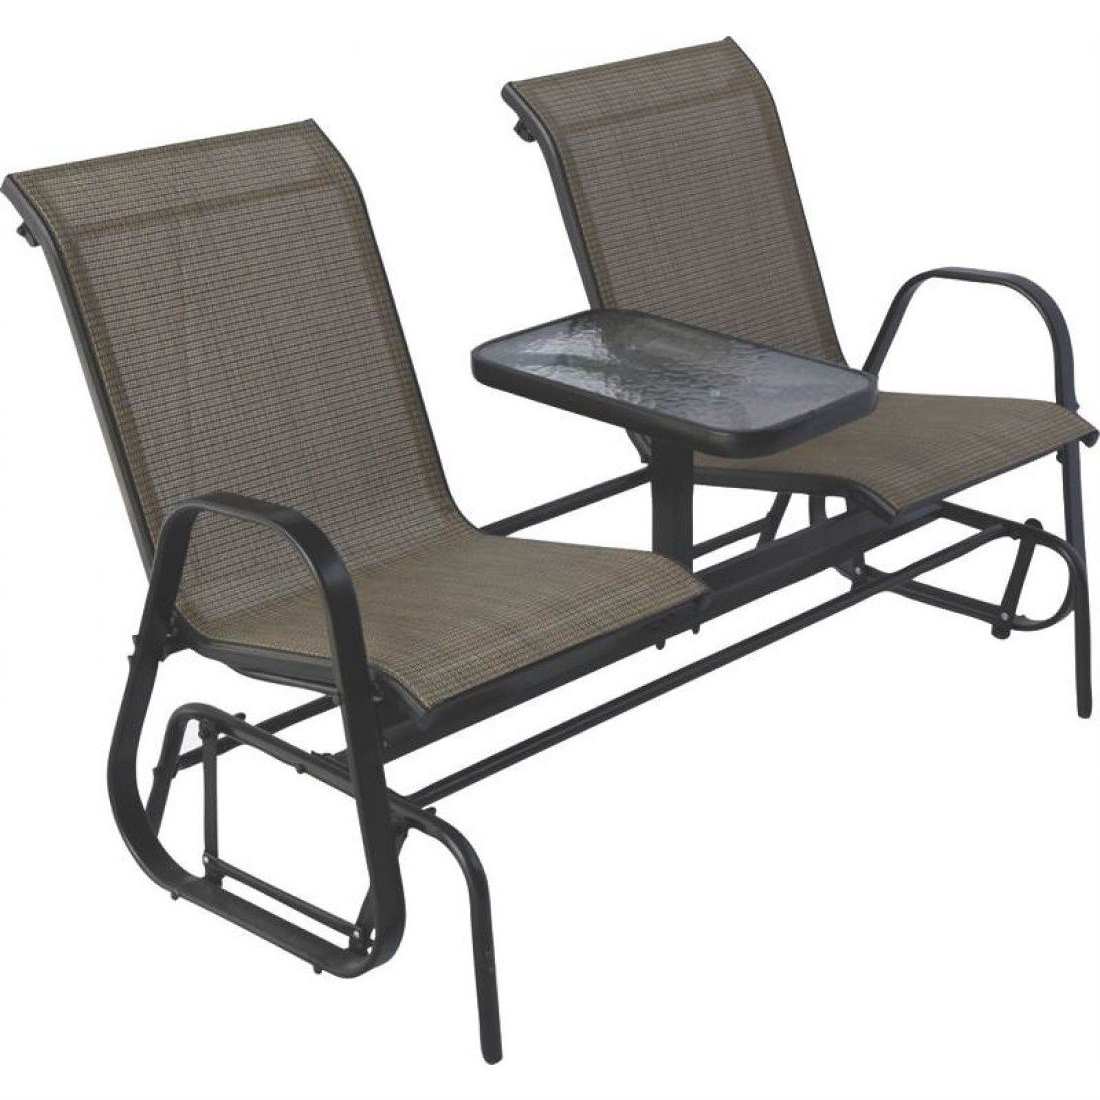 Widely Used 2 Person Outdoor Patio Furniture Glider Chairs With Console Table Inside Outdoor Patio Swing Glider Bench Chair S (Gallery 10 of 30)